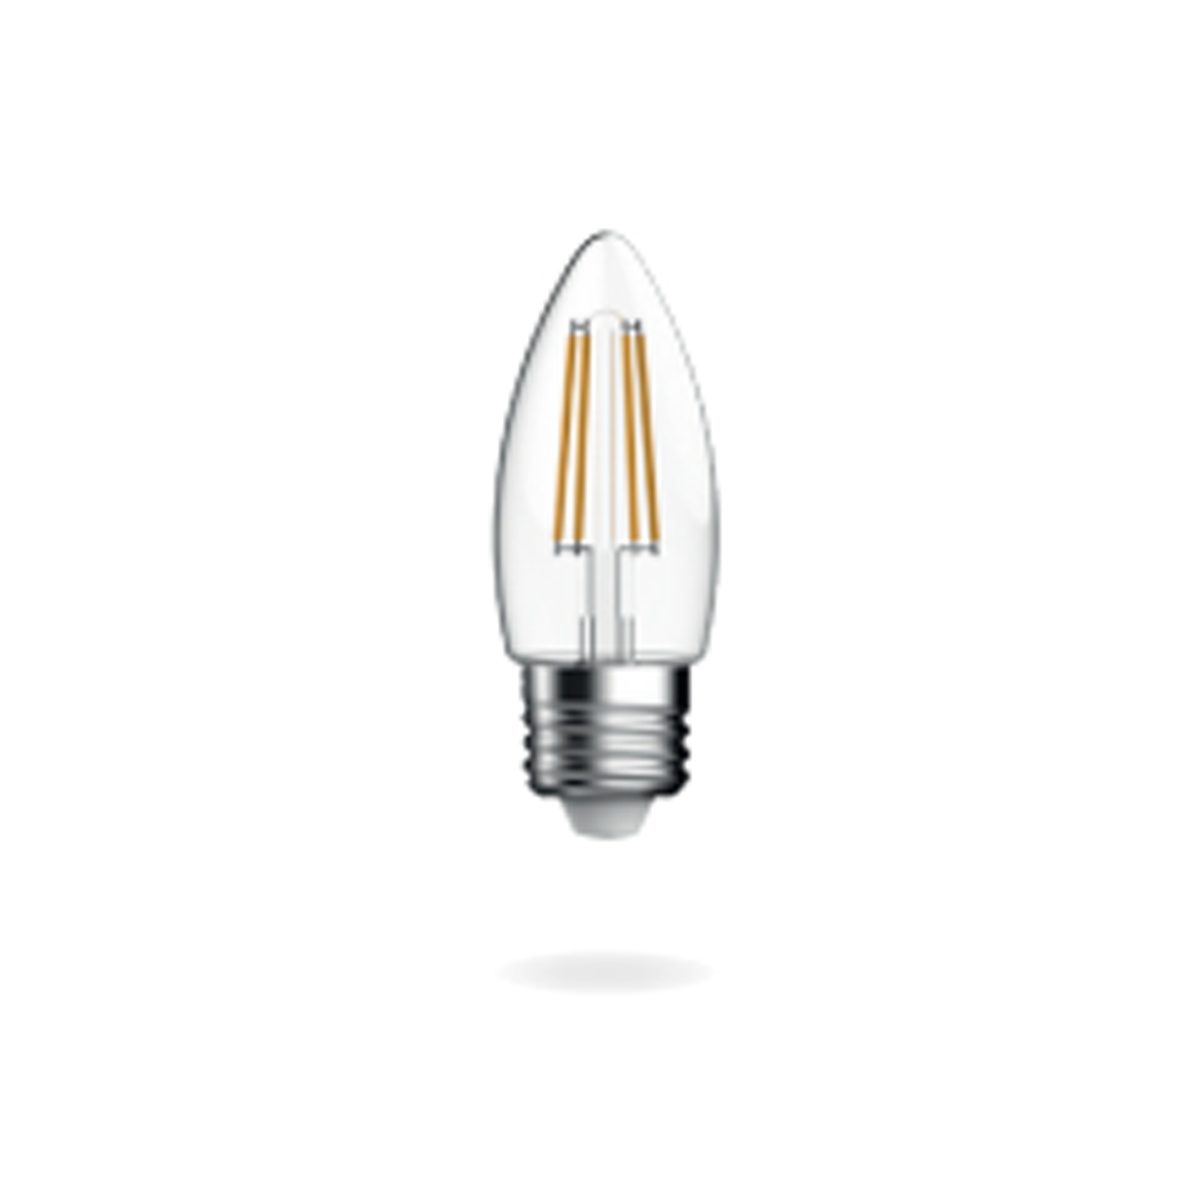 Energetic Candle E27 Dimmable Cool White 3.6W